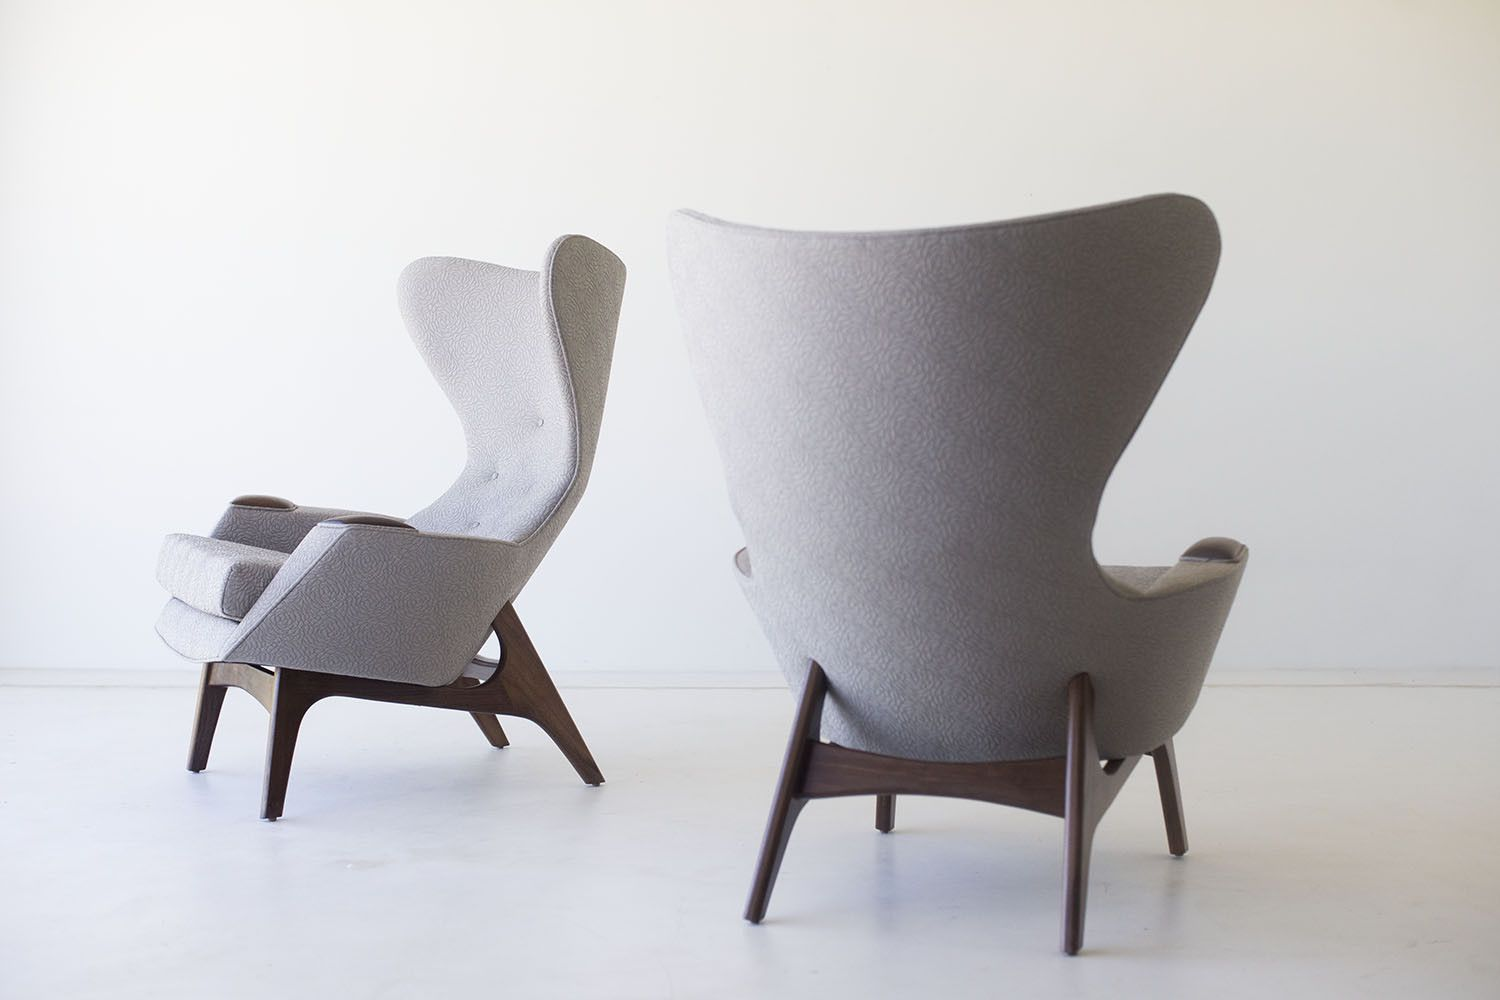 Modern Wing Chairs 1407 From The Side Mid Century Modern